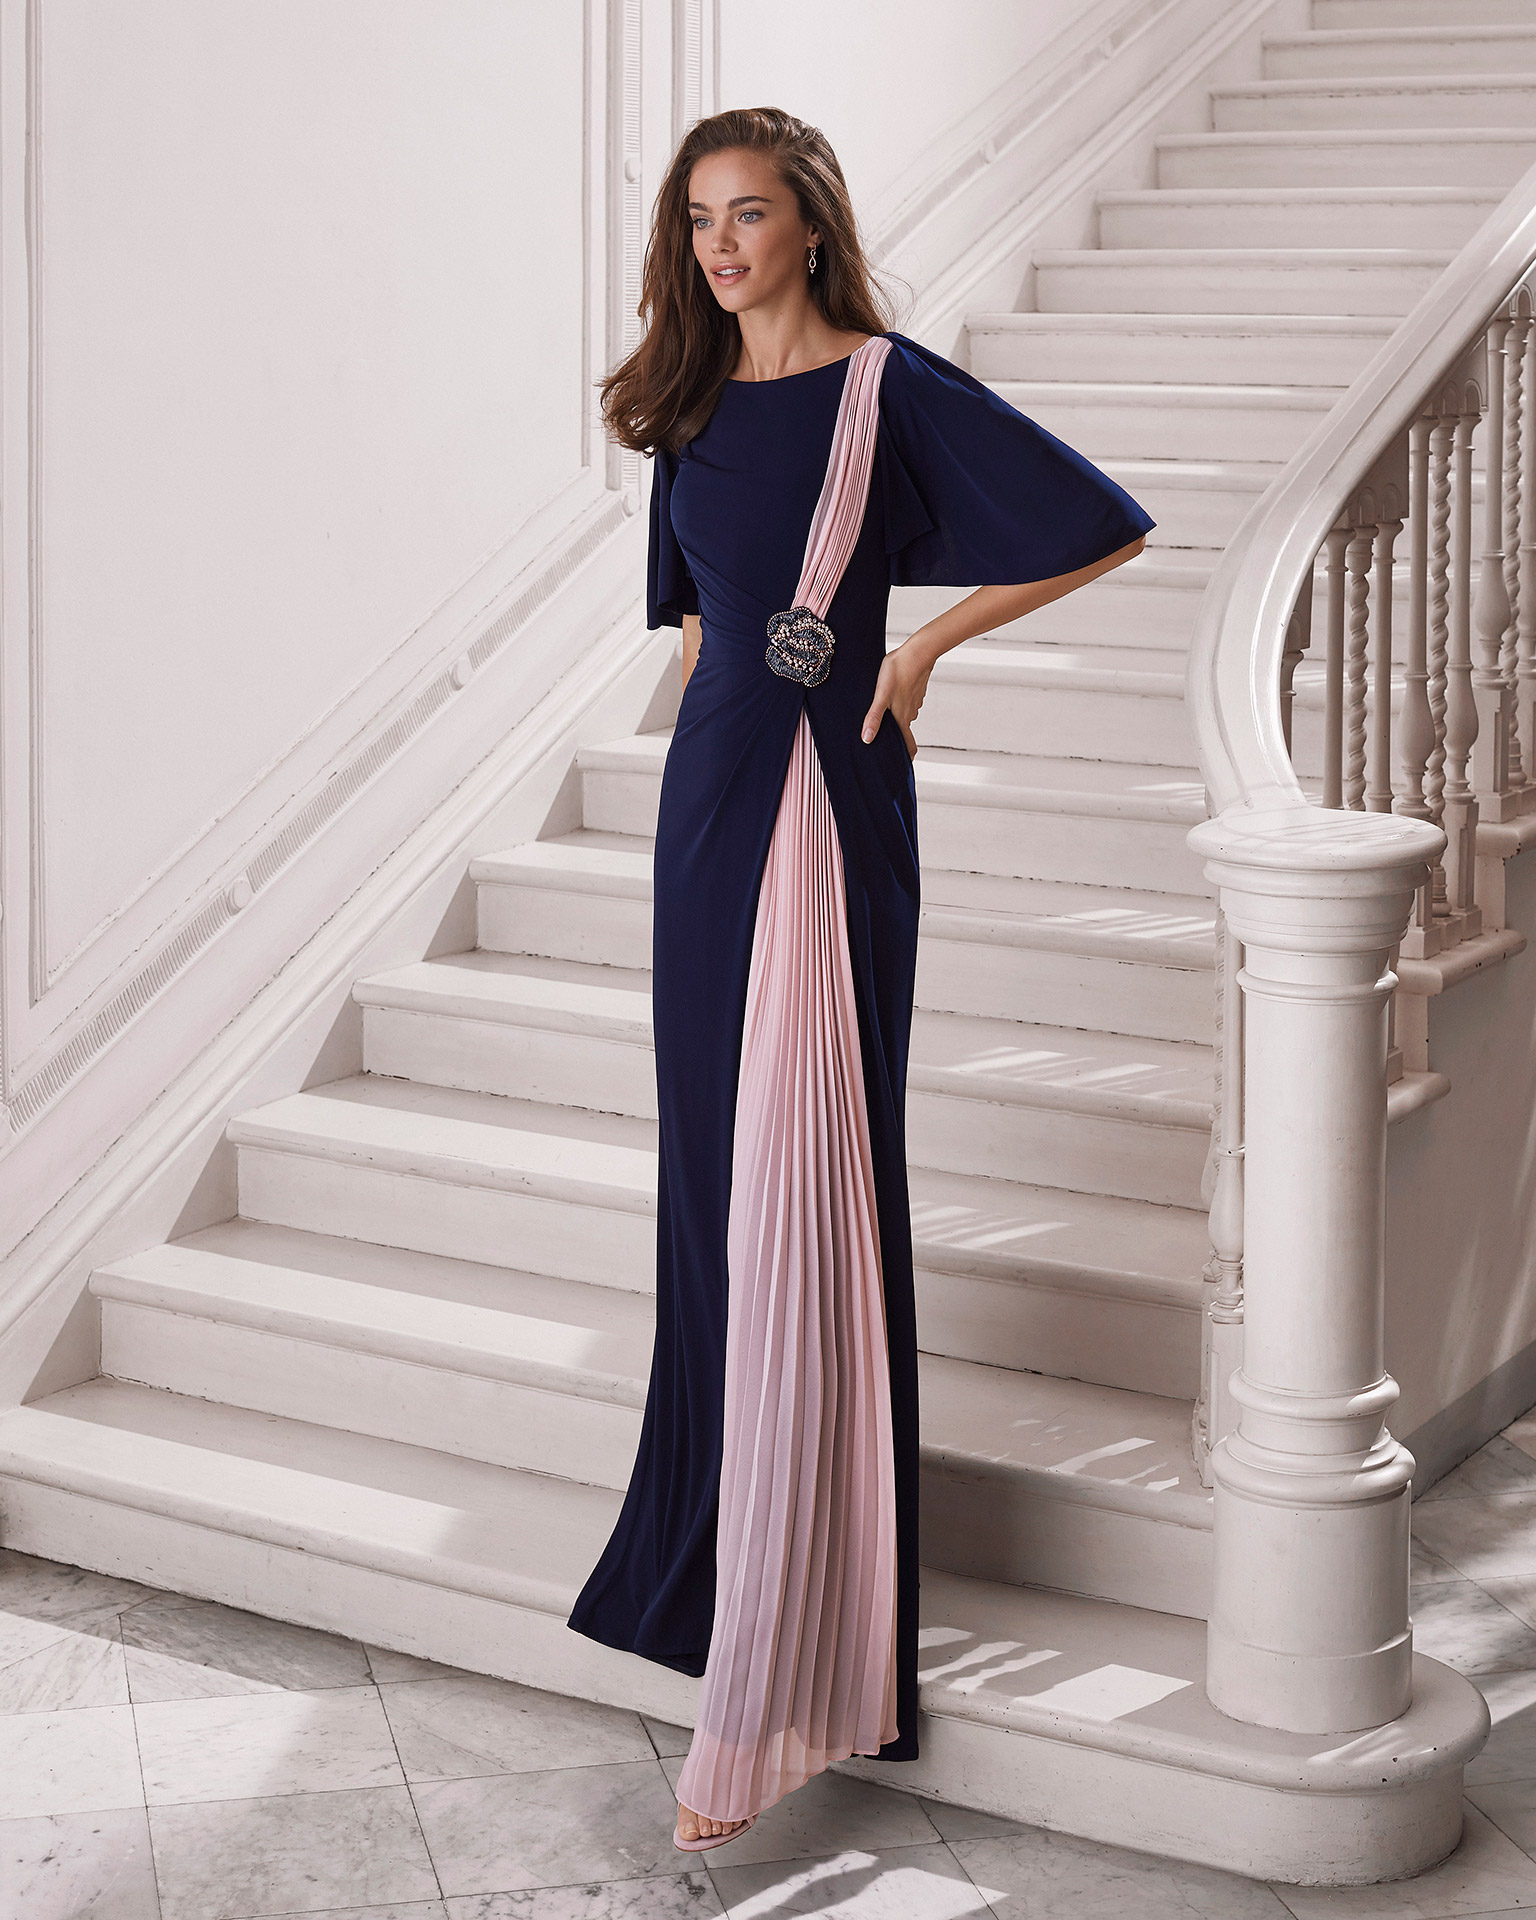 Cocktail dress in knit. Bateau neckline and closed back. With asymmetrical pleated detail at front of dress and beaded clasp on front at side. 2021 MARFIL BARCELONA Collection.